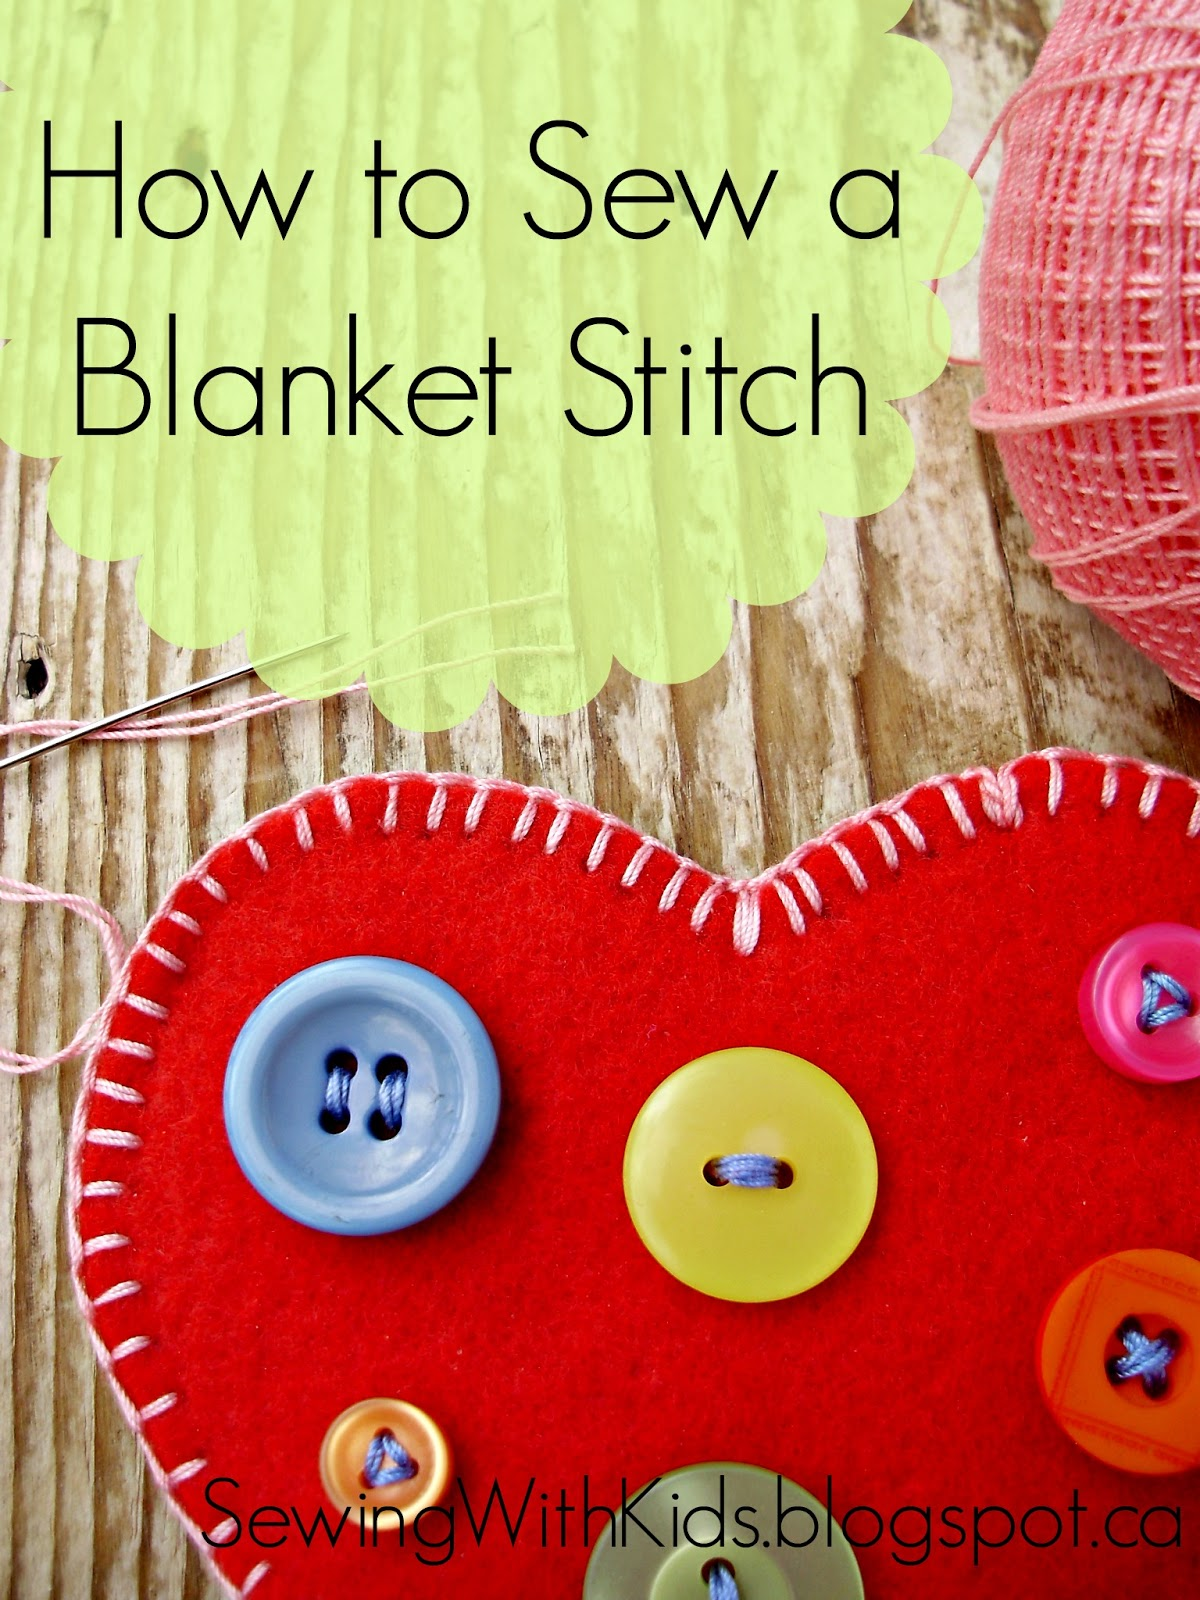 sewing with kids how to sew a blanket stitch. Black Bedroom Furniture Sets. Home Design Ideas